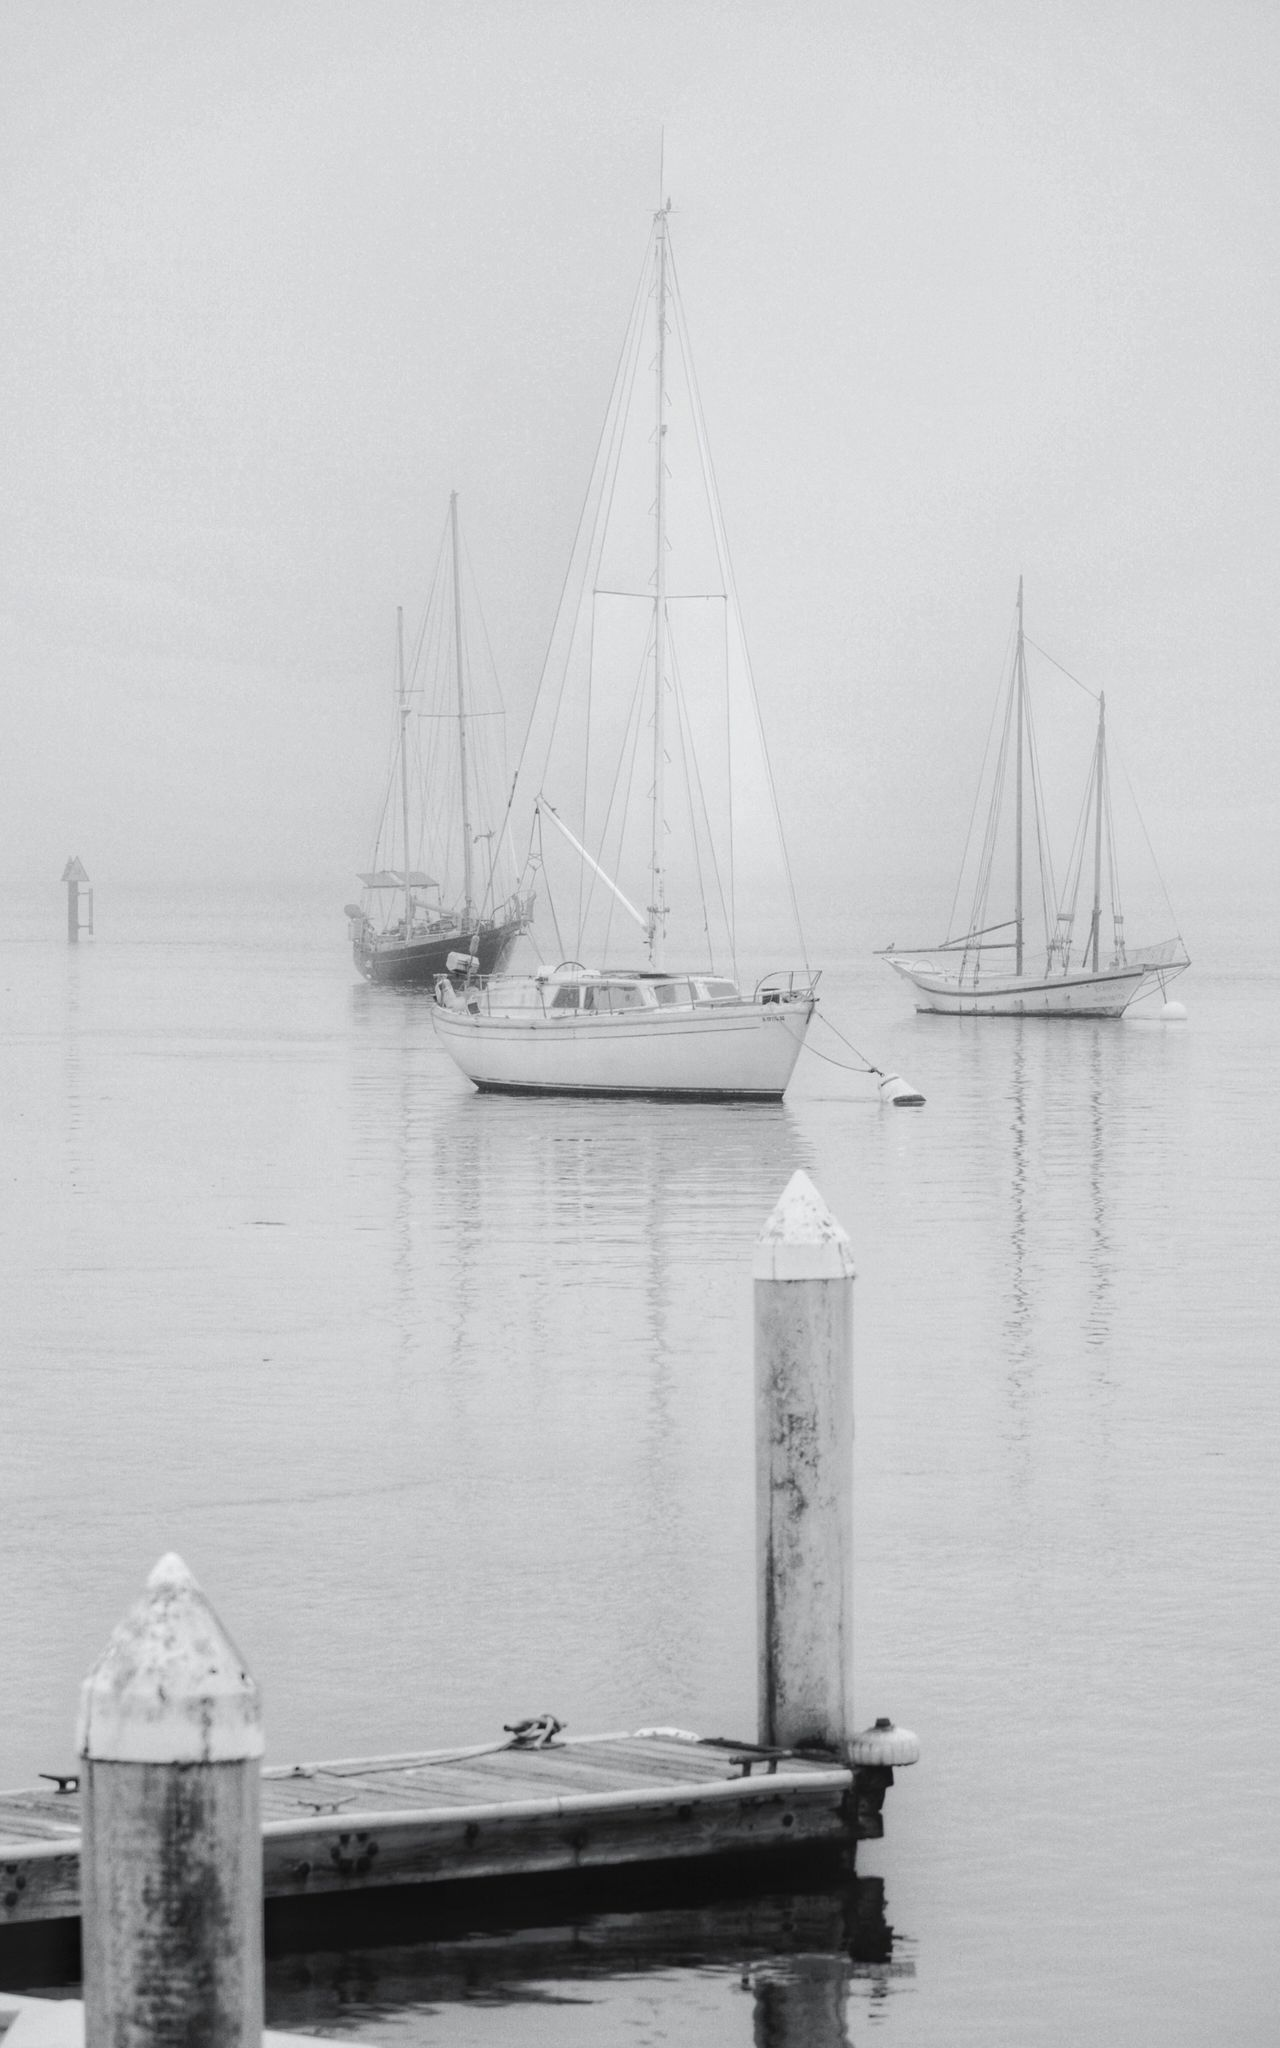 WHITES Nautical Vessel Sea Water Transportation Boat Mode Of Transport Sailboat Sailing Mast Moored Outdoors Tranquility California EyeEm Gallery White Morro Bay Eye4photography  Horizon Over Water Nature Day Harbor No People Scenics Sailing Ship Yacht